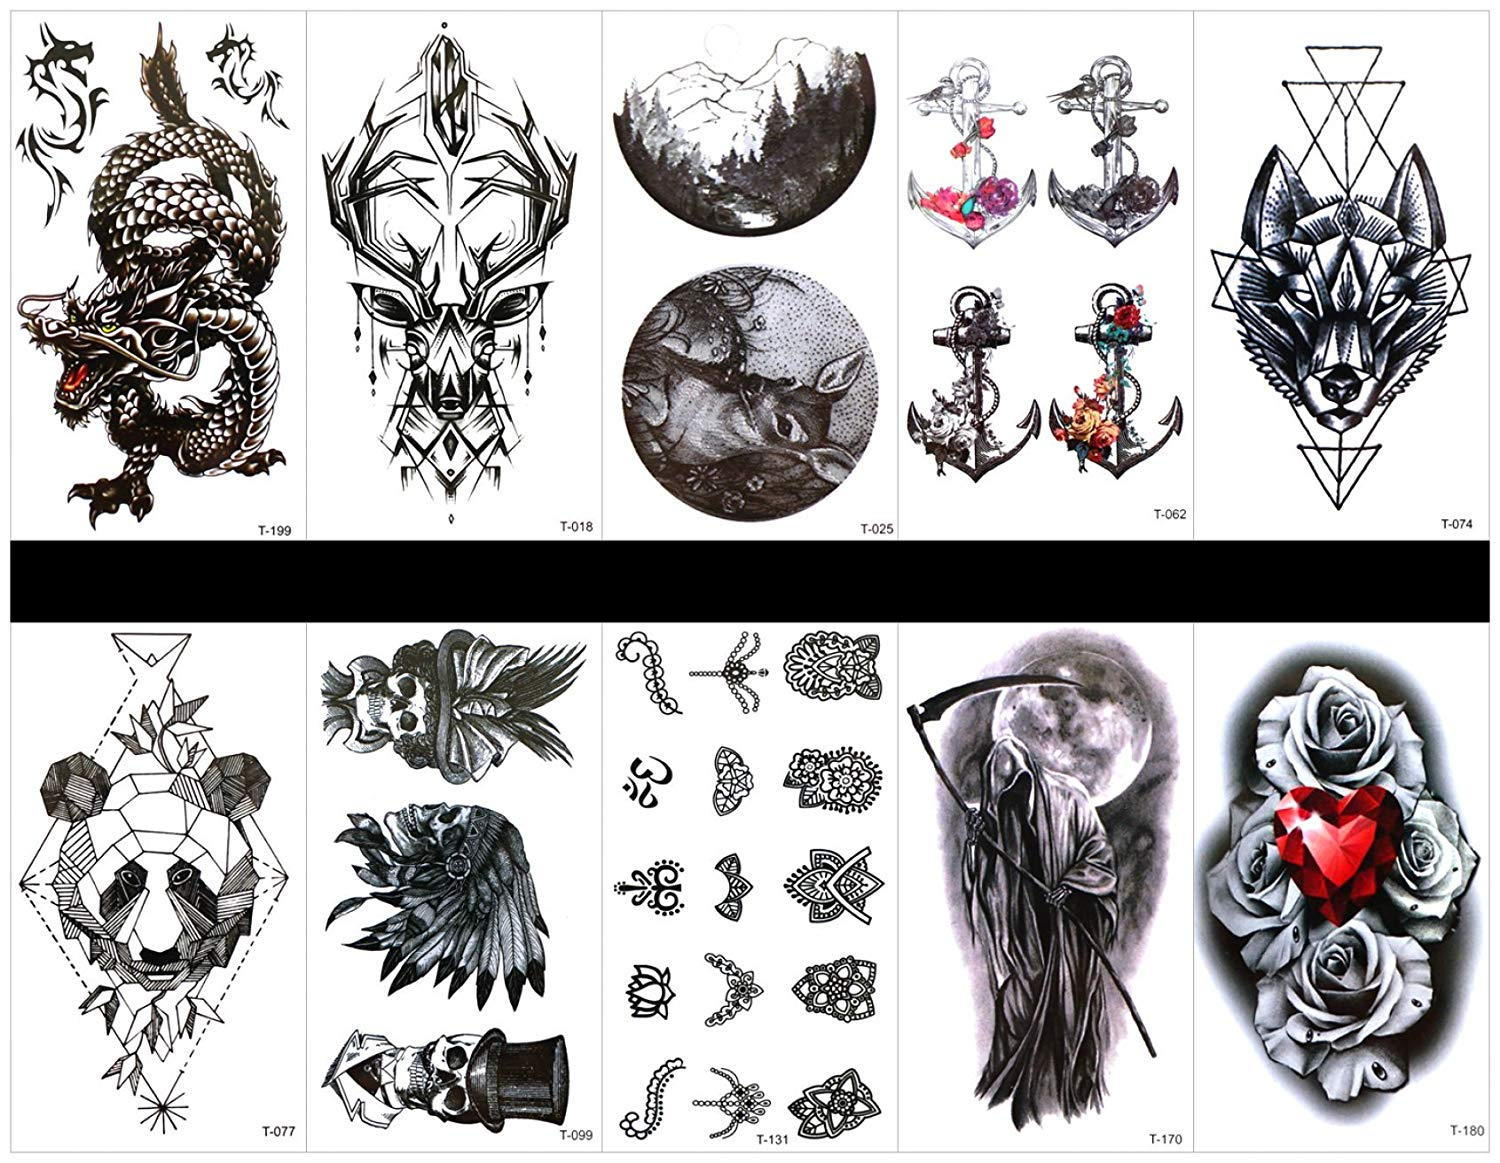 9746453ae8fd2 Get Quotations · Interookie 10pcs fake tattoo stickers dragon temporary  tattoos in one packages,mixed designs as totem